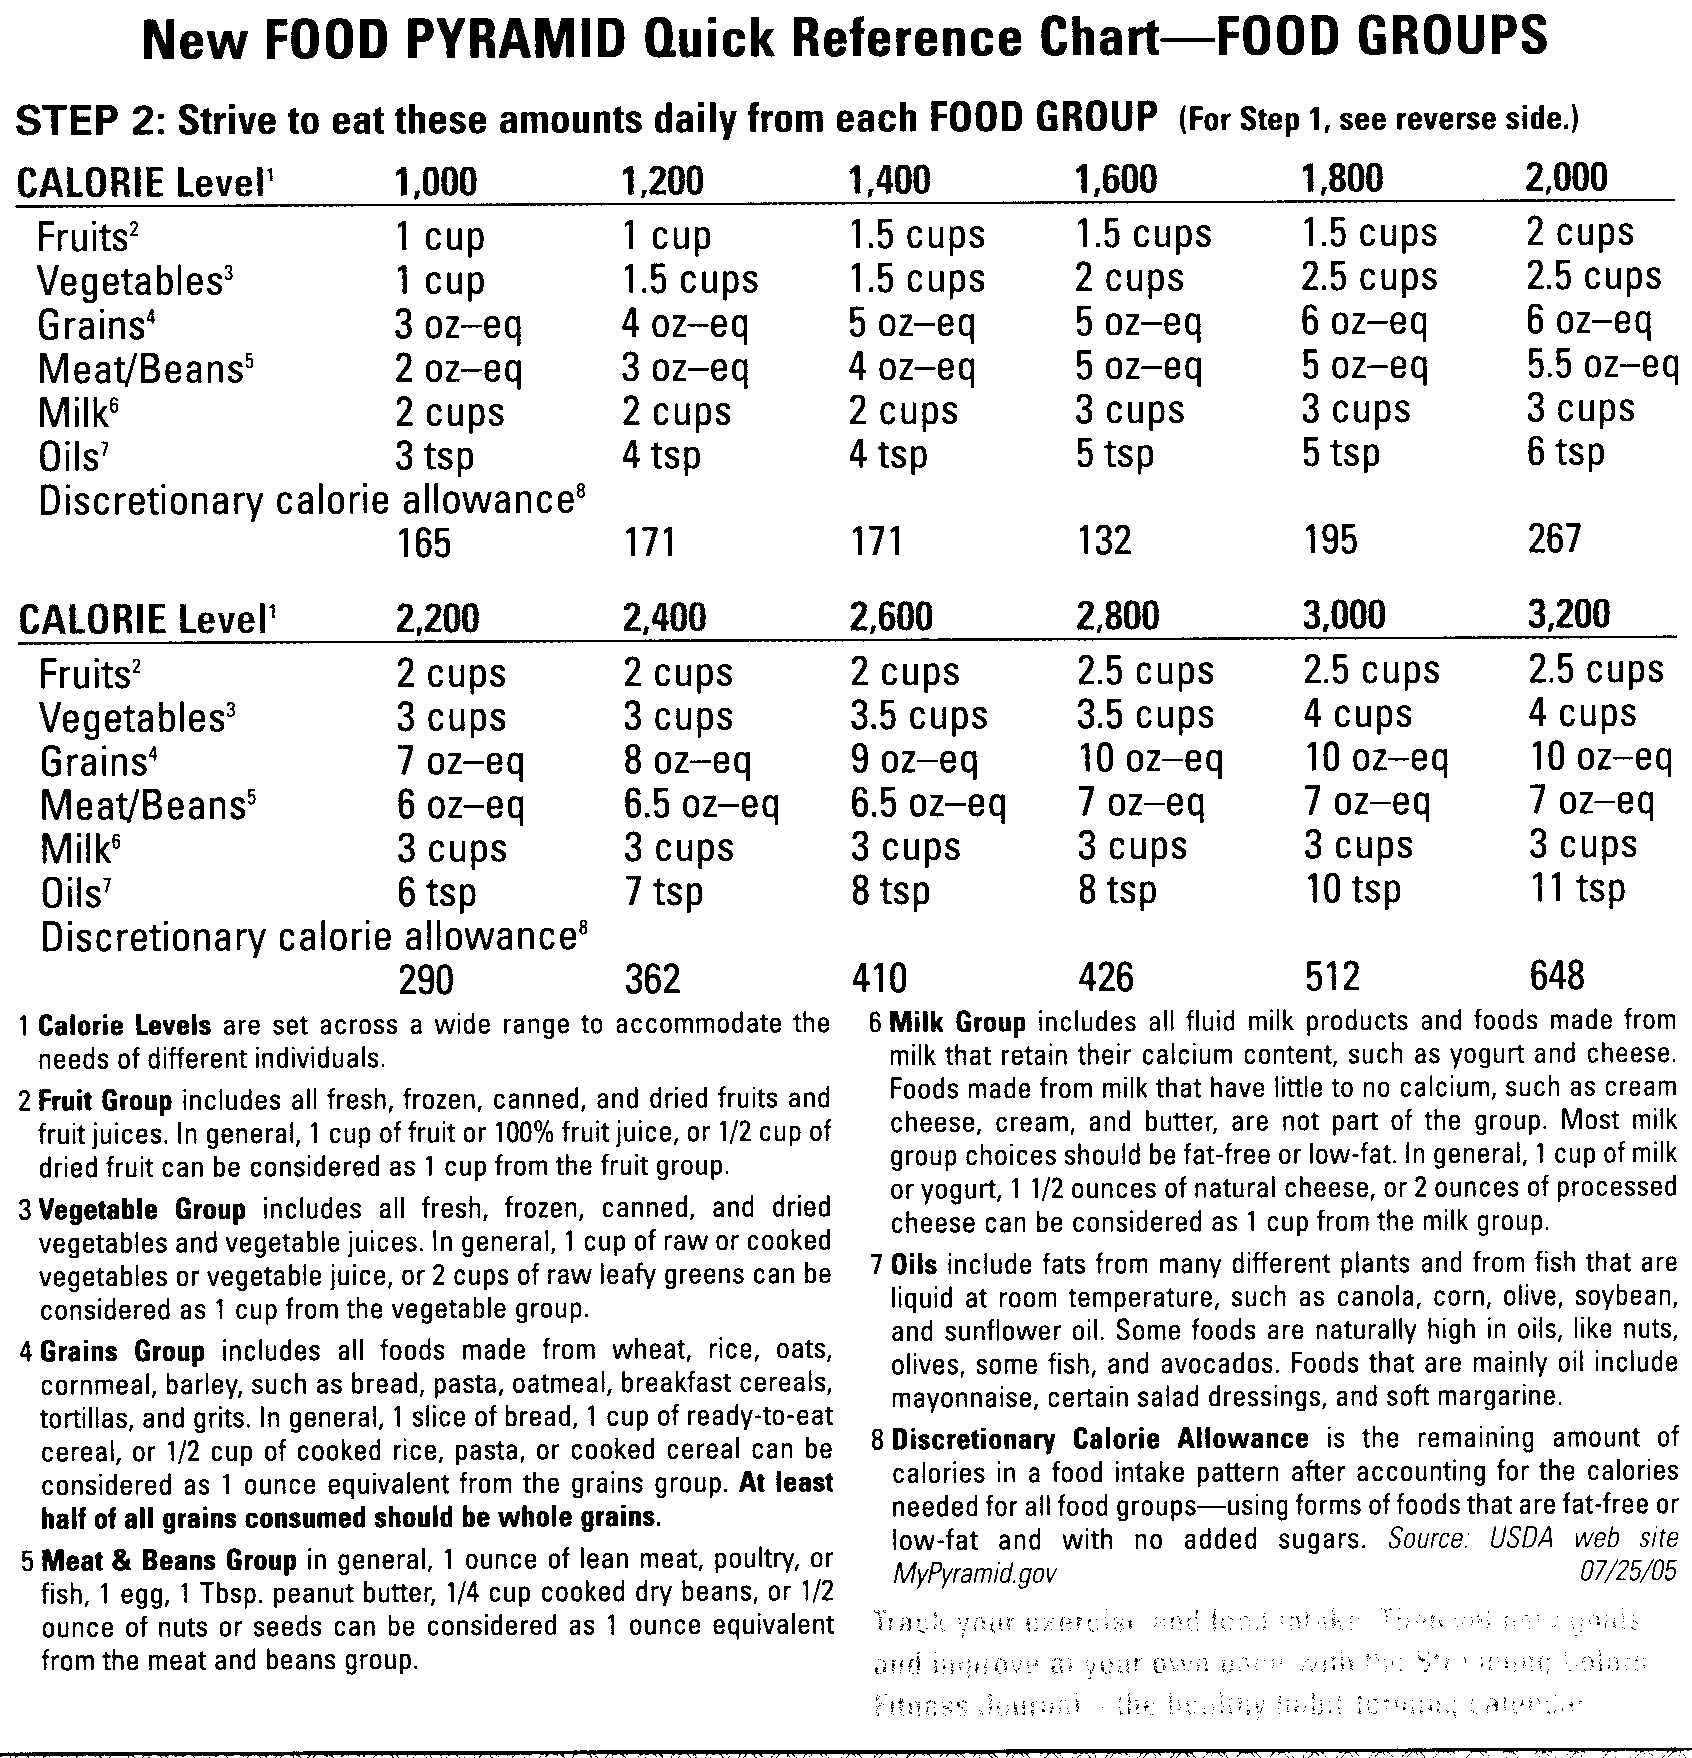 New Food Pyramid Calorie Chart -- Food Groups